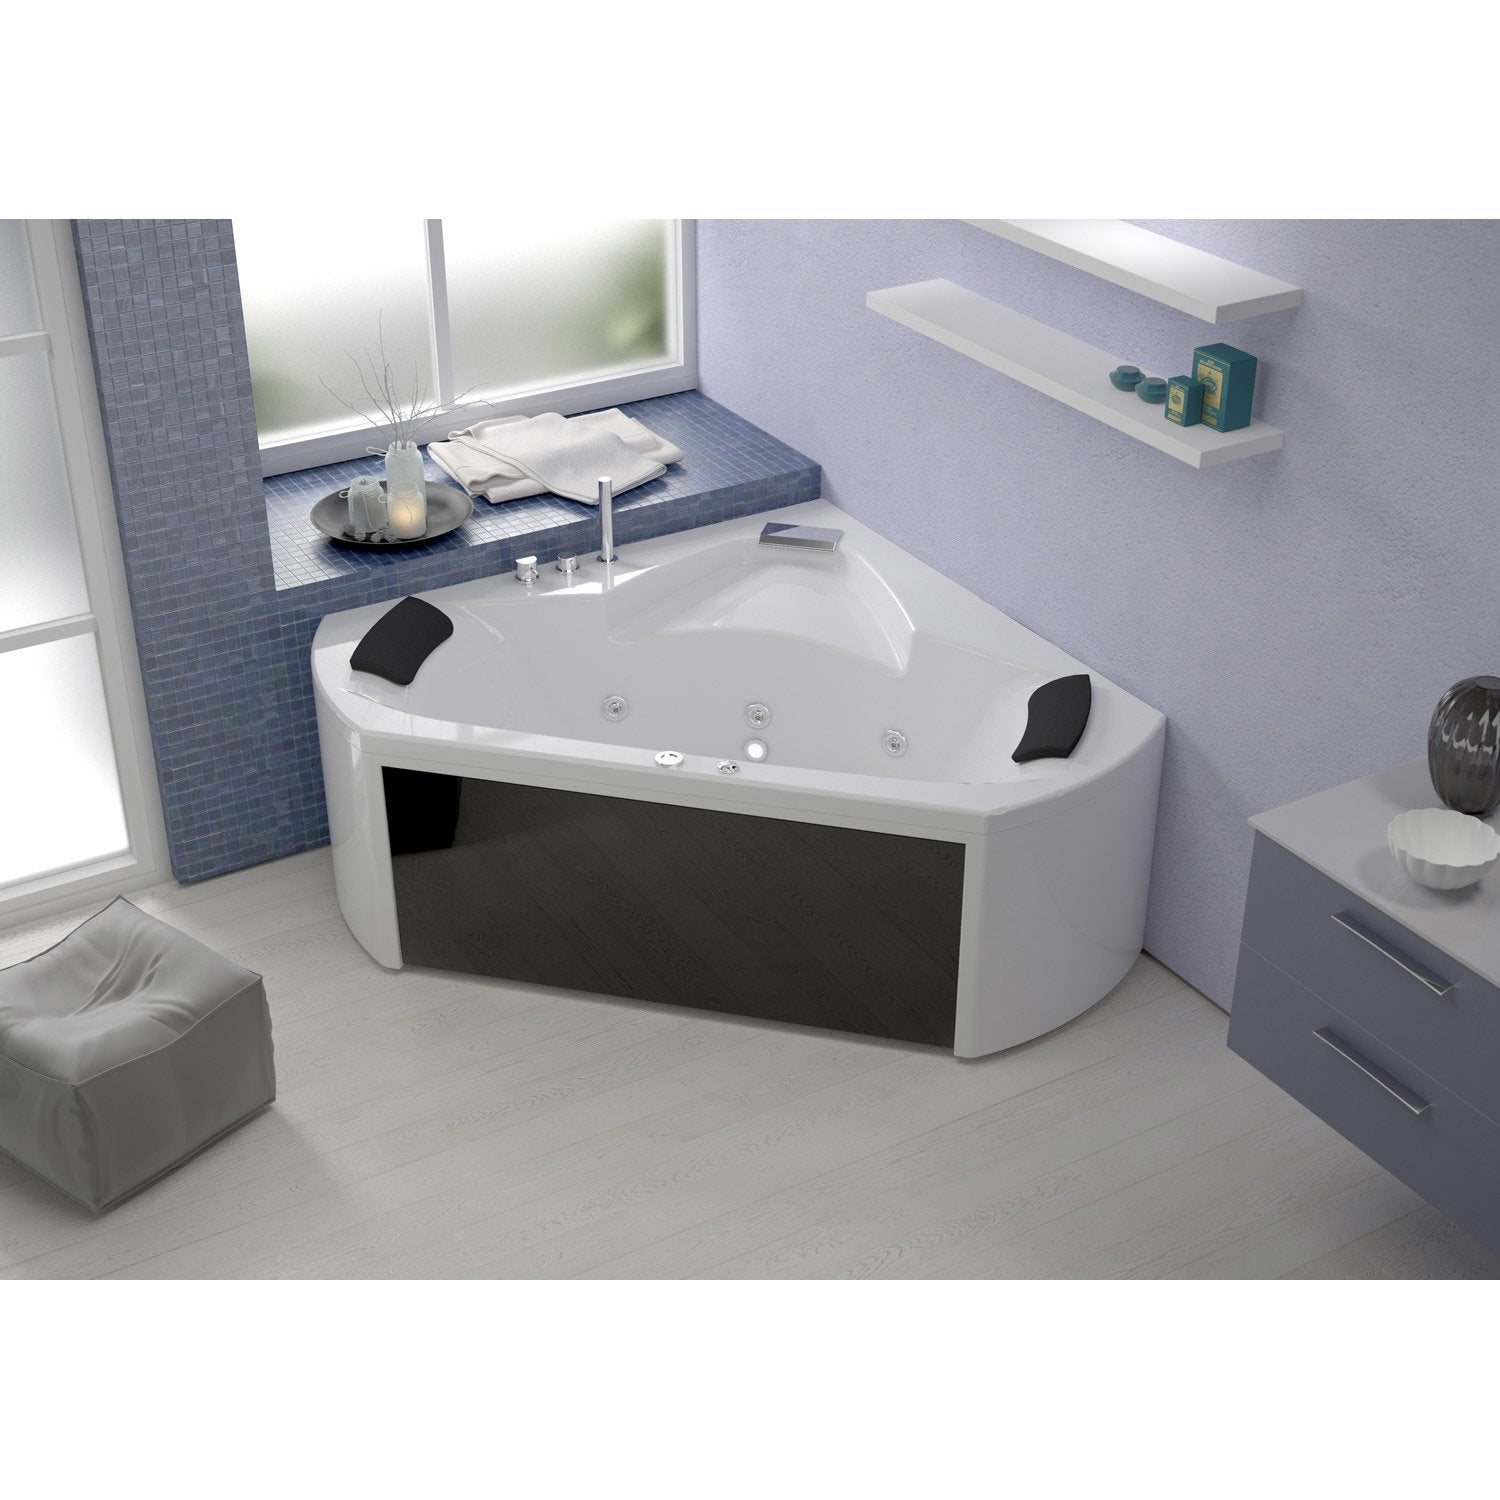 baignoire baln o avec robinetterie angle cm thala massplus leroy merlin. Black Bedroom Furniture Sets. Home Design Ideas